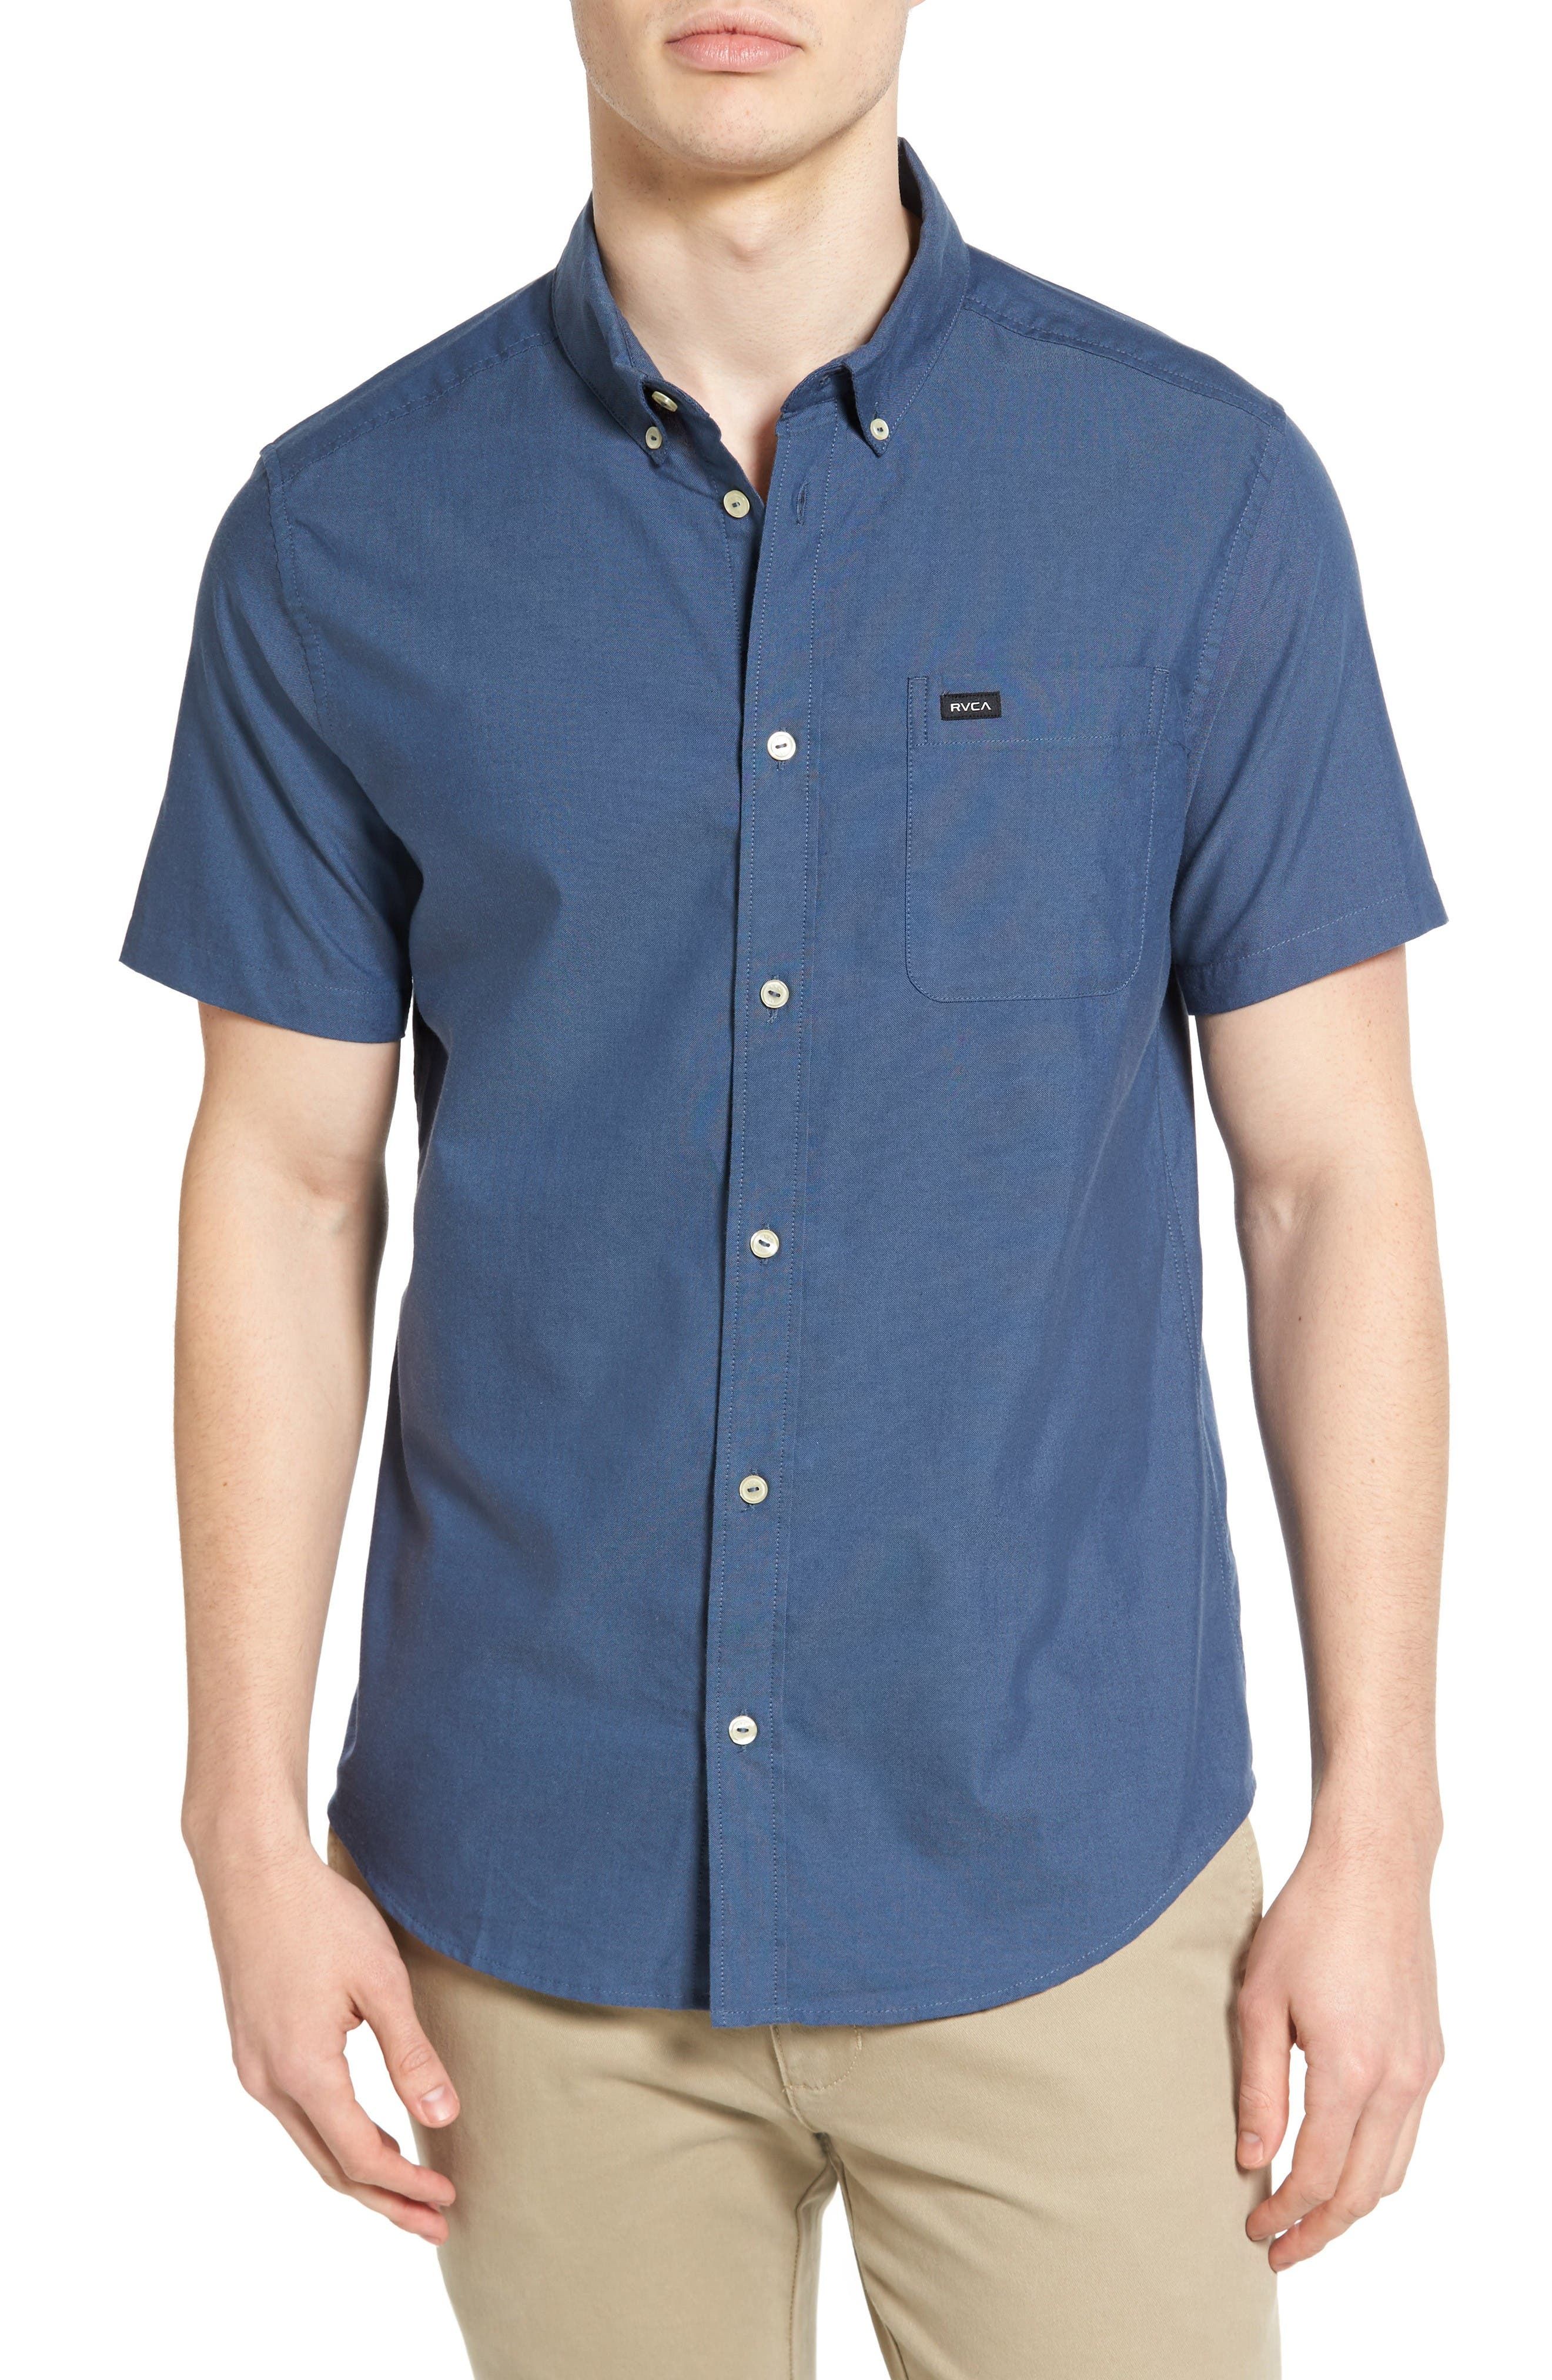 'That'll Do' Slim Fit Short Sleeve Oxford Shirt,                         Main,                         color, Blue Slate